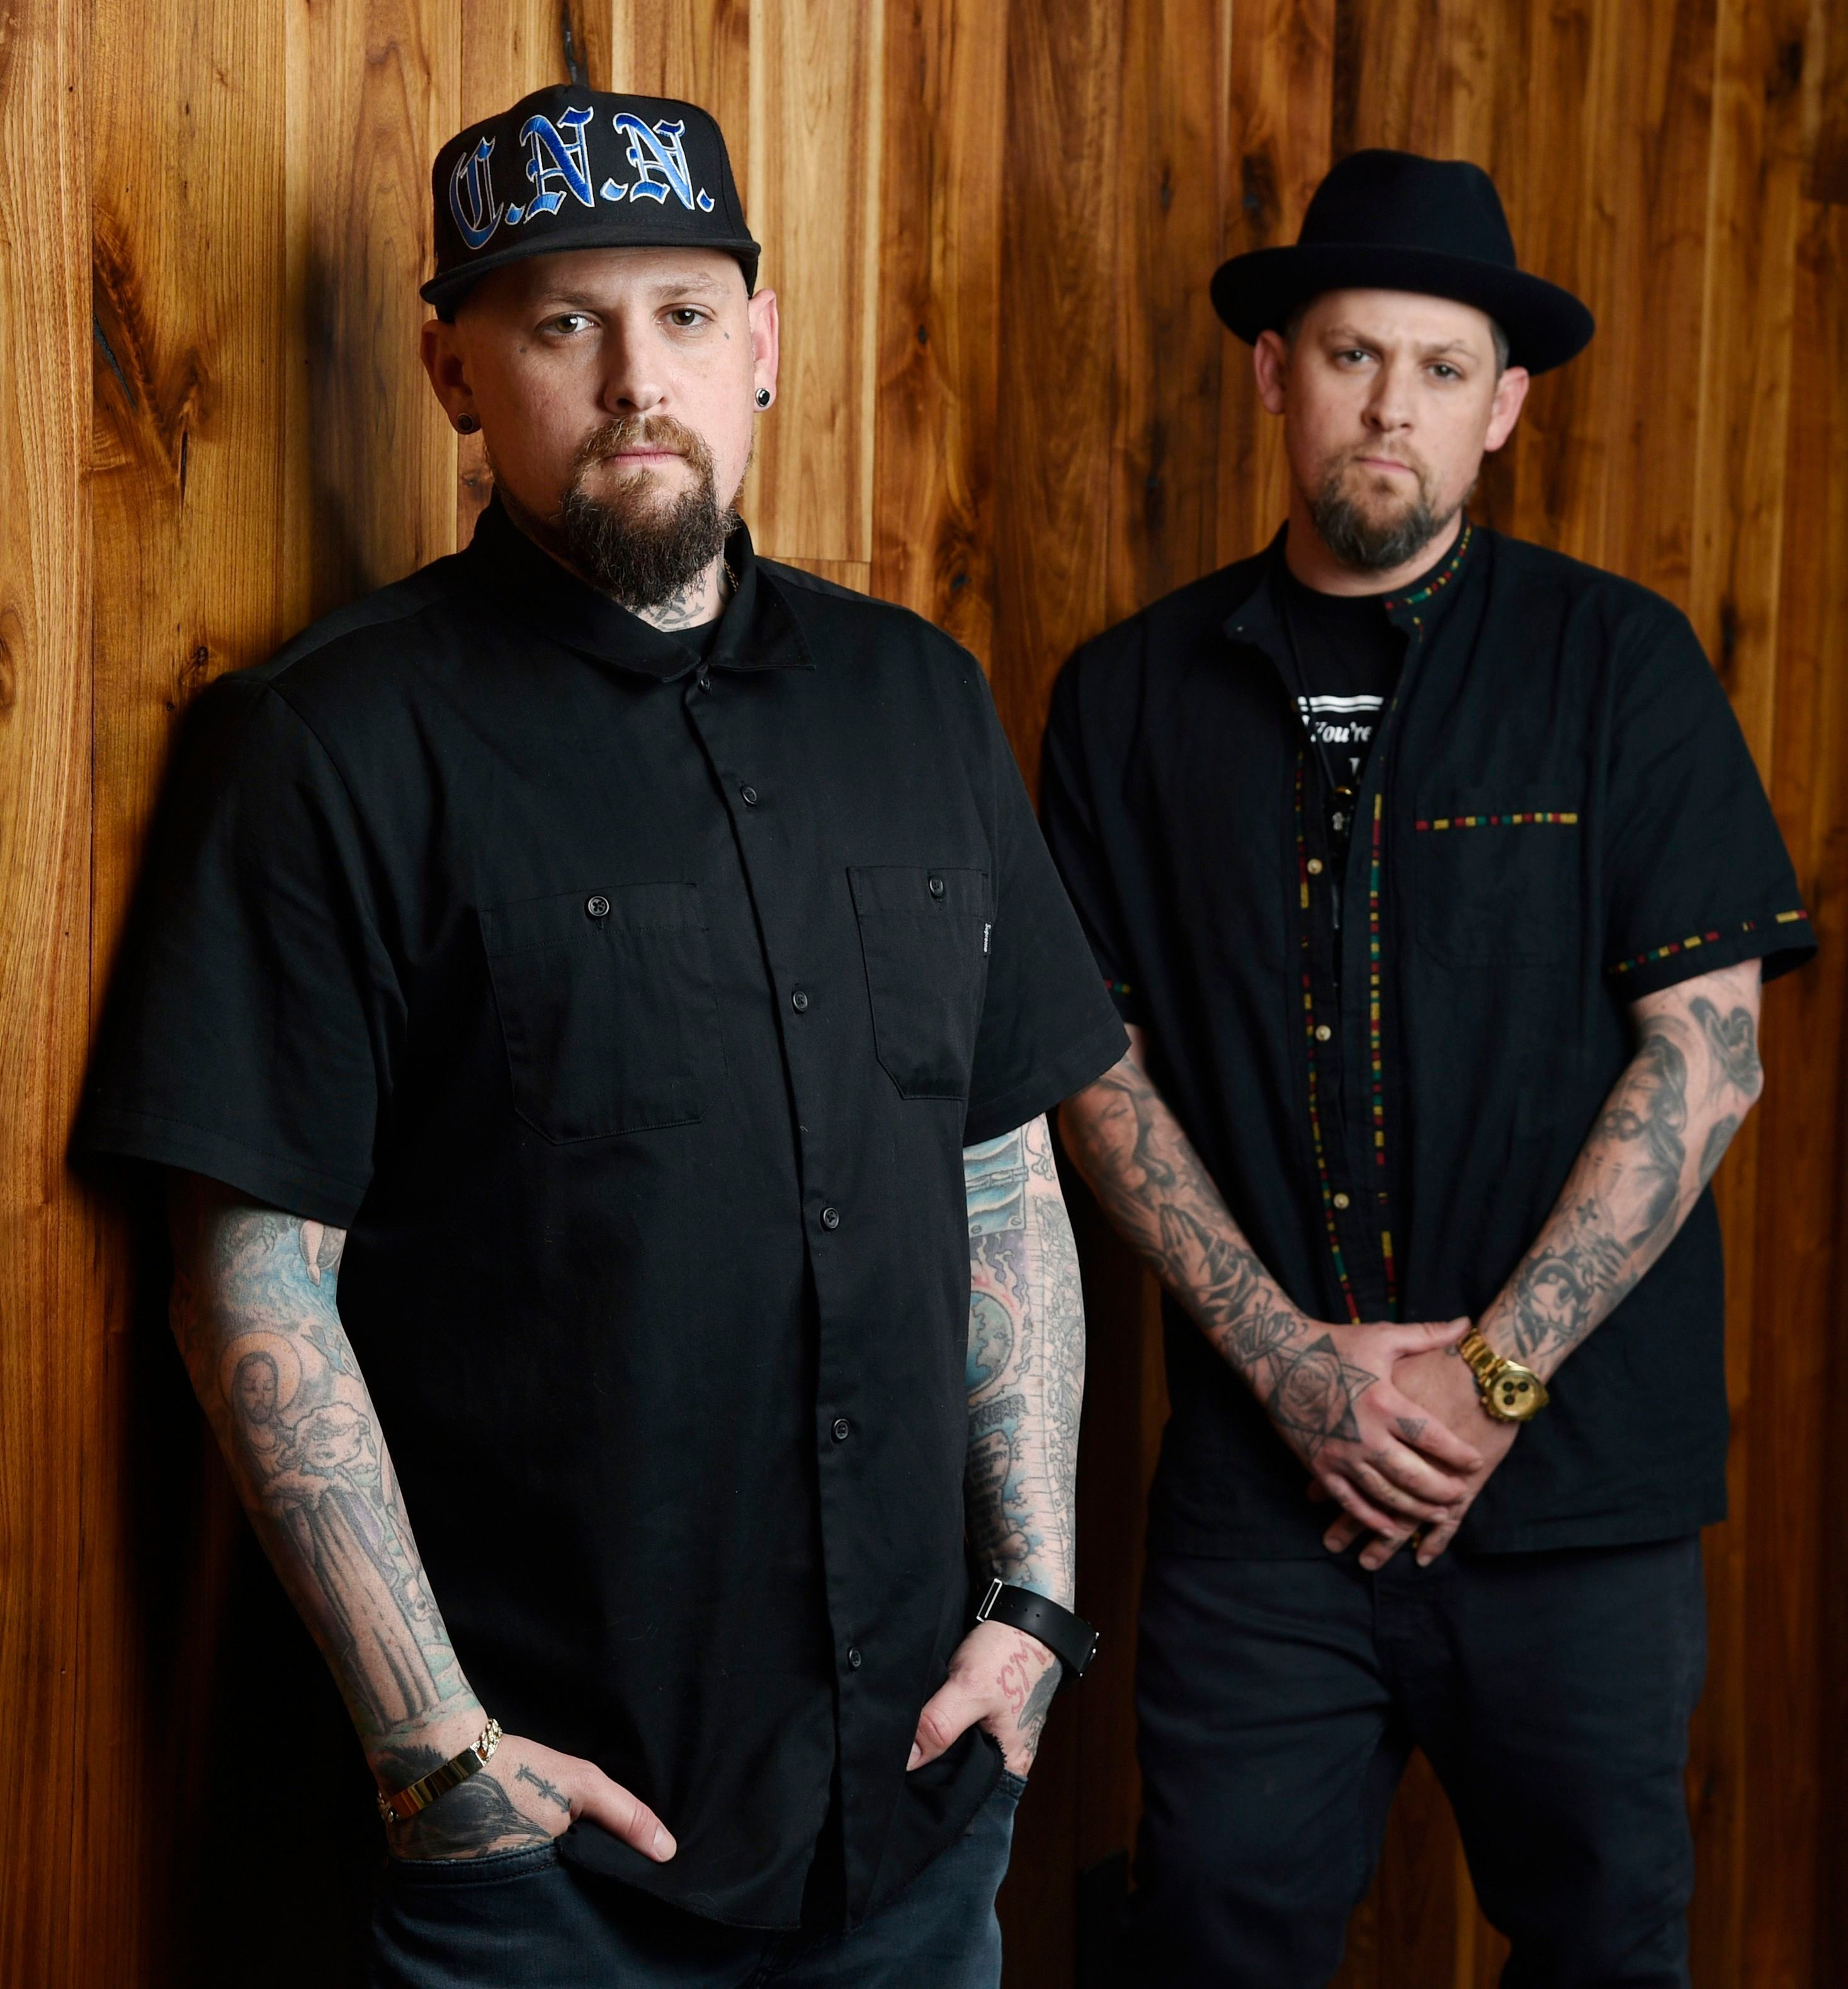 Benji Madden, left, and his twin brother Joel Madden of the band Good Charlotte pose for a portrait, in Burbank, Calif. on July 10, 2018.